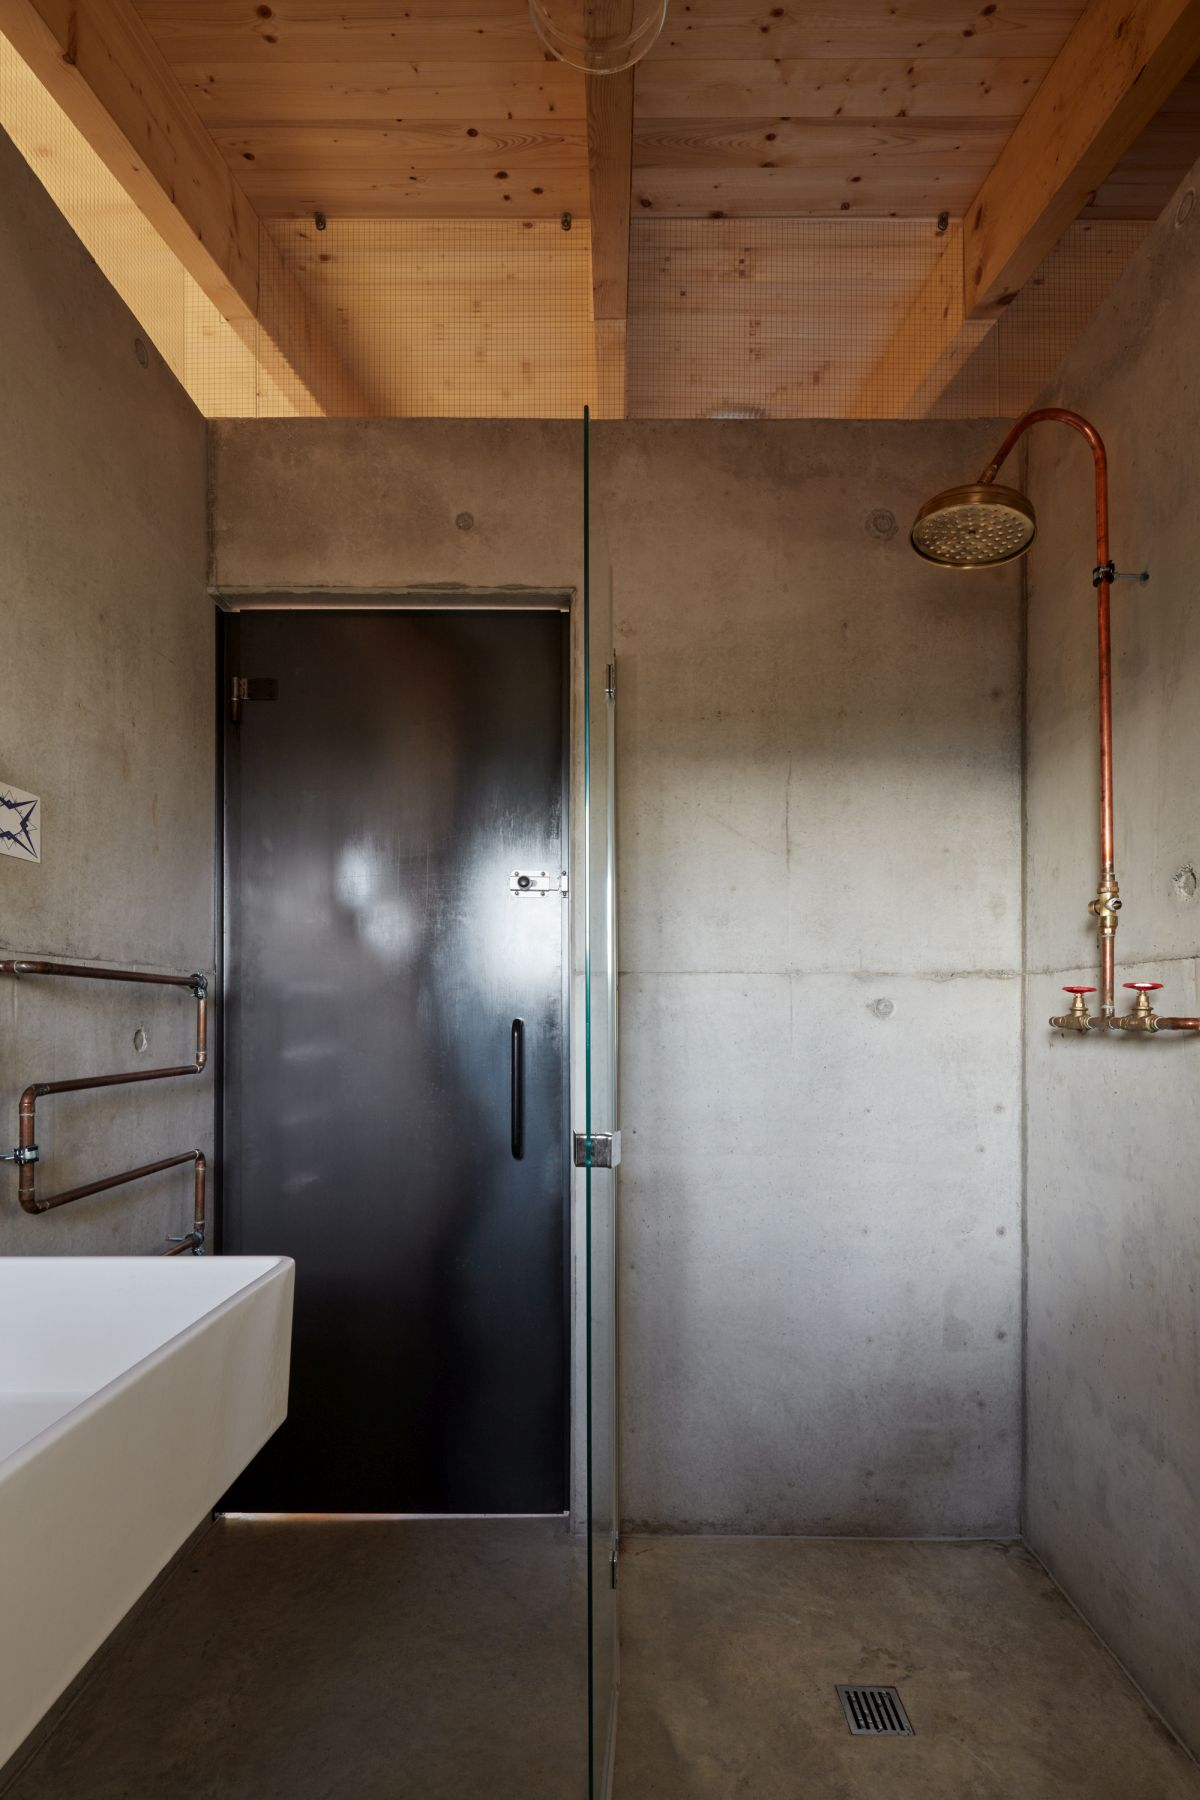 There's definitely a stronger industrial vibe in spaces like this bathroom compared to some of the other rooms